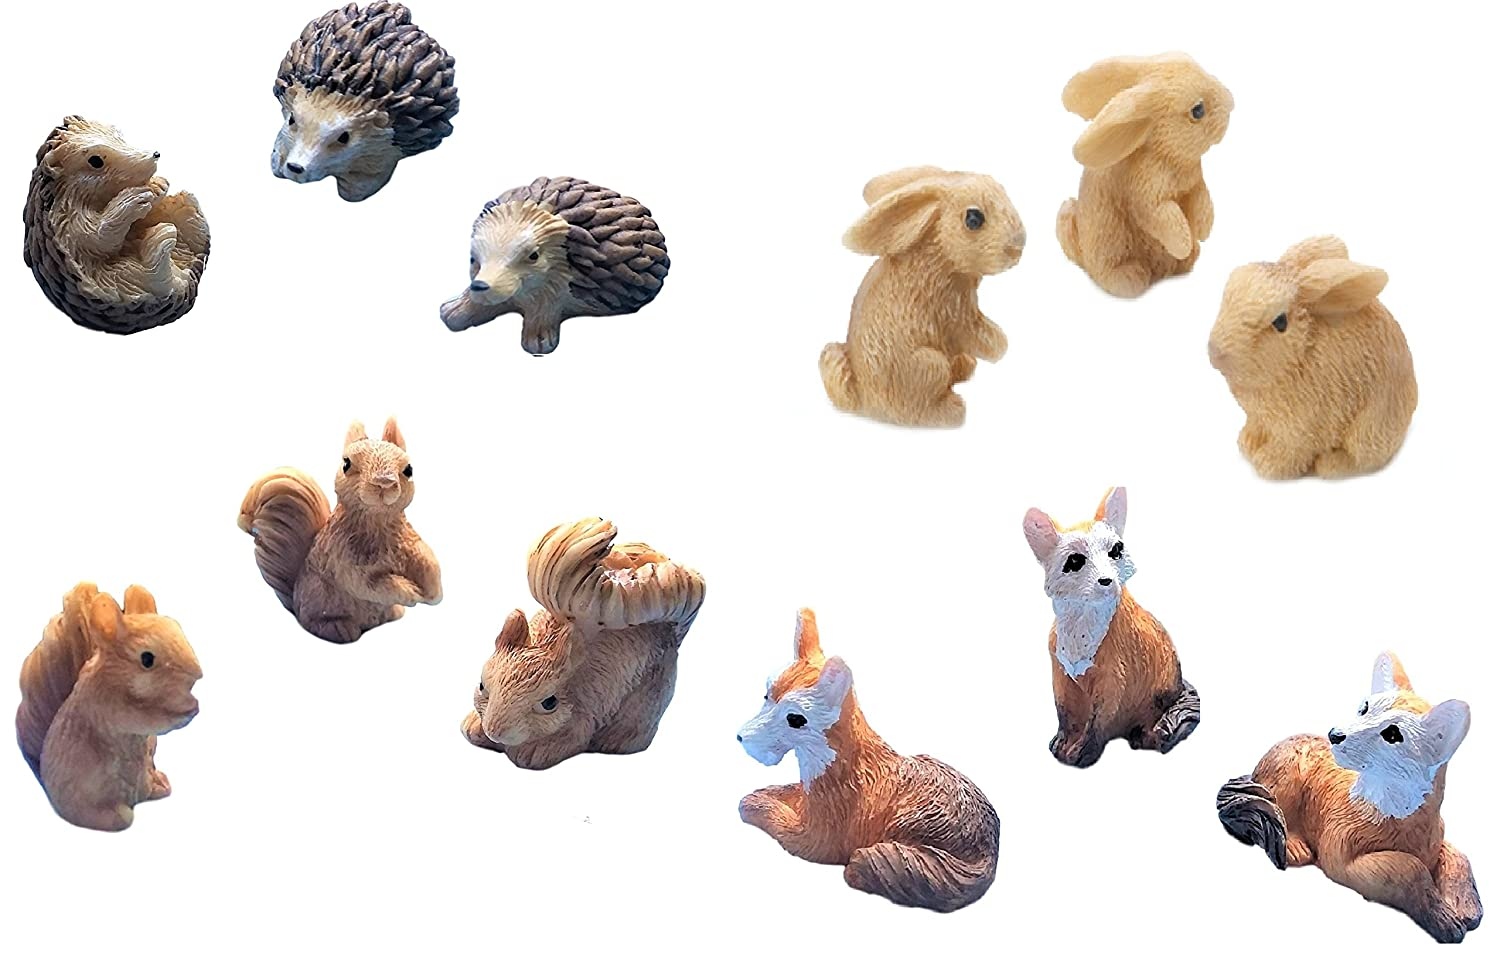 "Miniature Fairy Garden Realistic Resin Tiny 1.2"" x 1"" Squirrels, 1.5"" x 1"" Foxes, 1.25"" Hedgehogs, 1"" x 1"" x1"" Bunny Rabbits - Outdoor/House Decor - Bundle of 12 Animals - Farm Woodland Creatures"